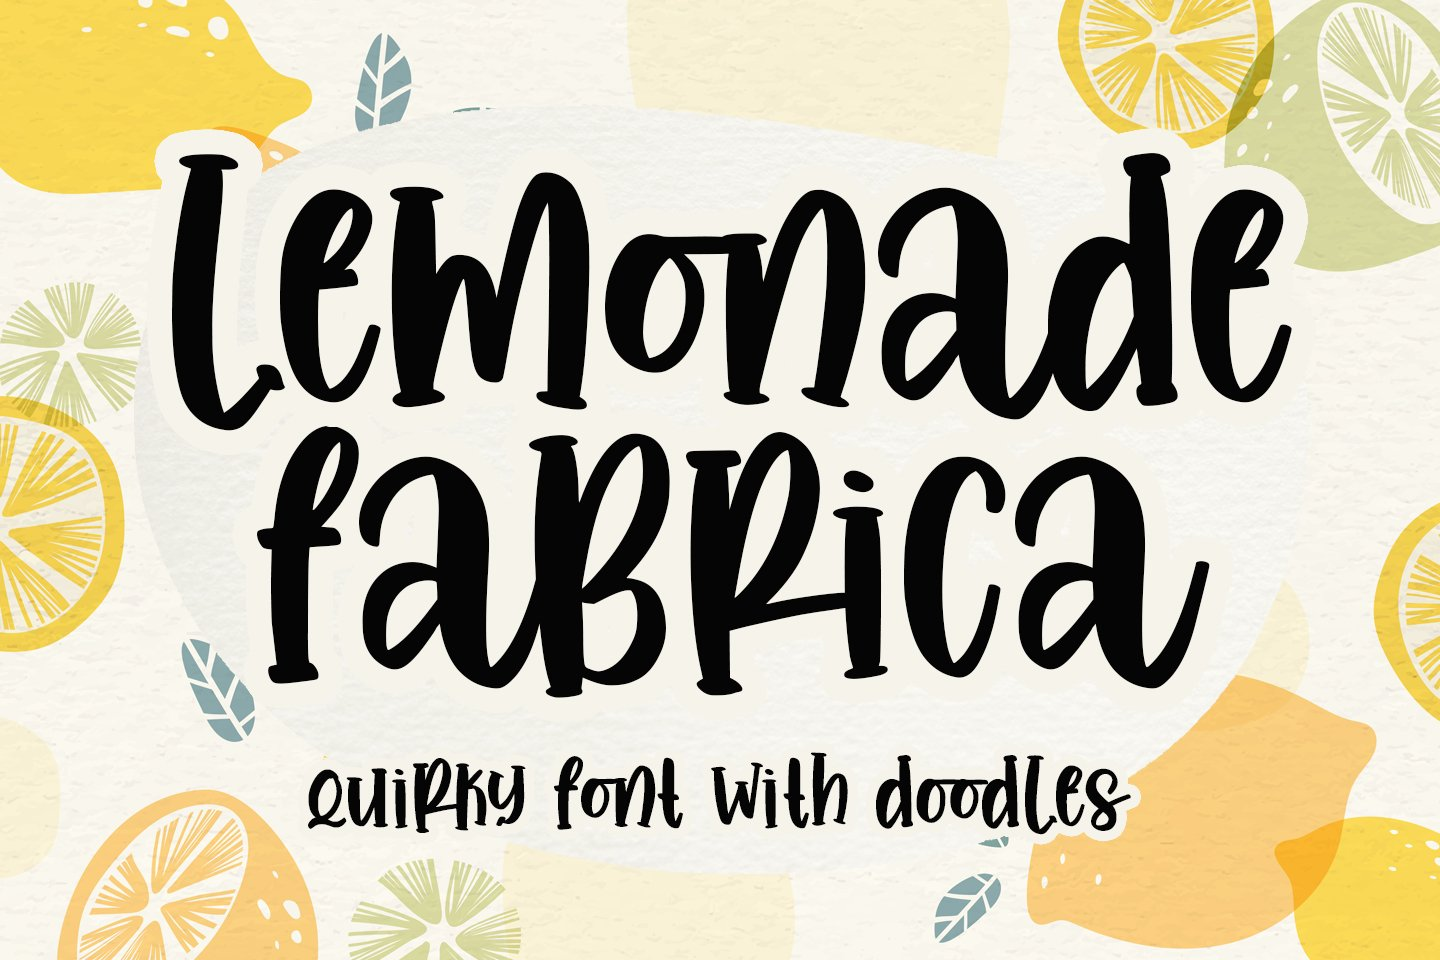 Lemonade fabrica -quirky with doodles- example image 1